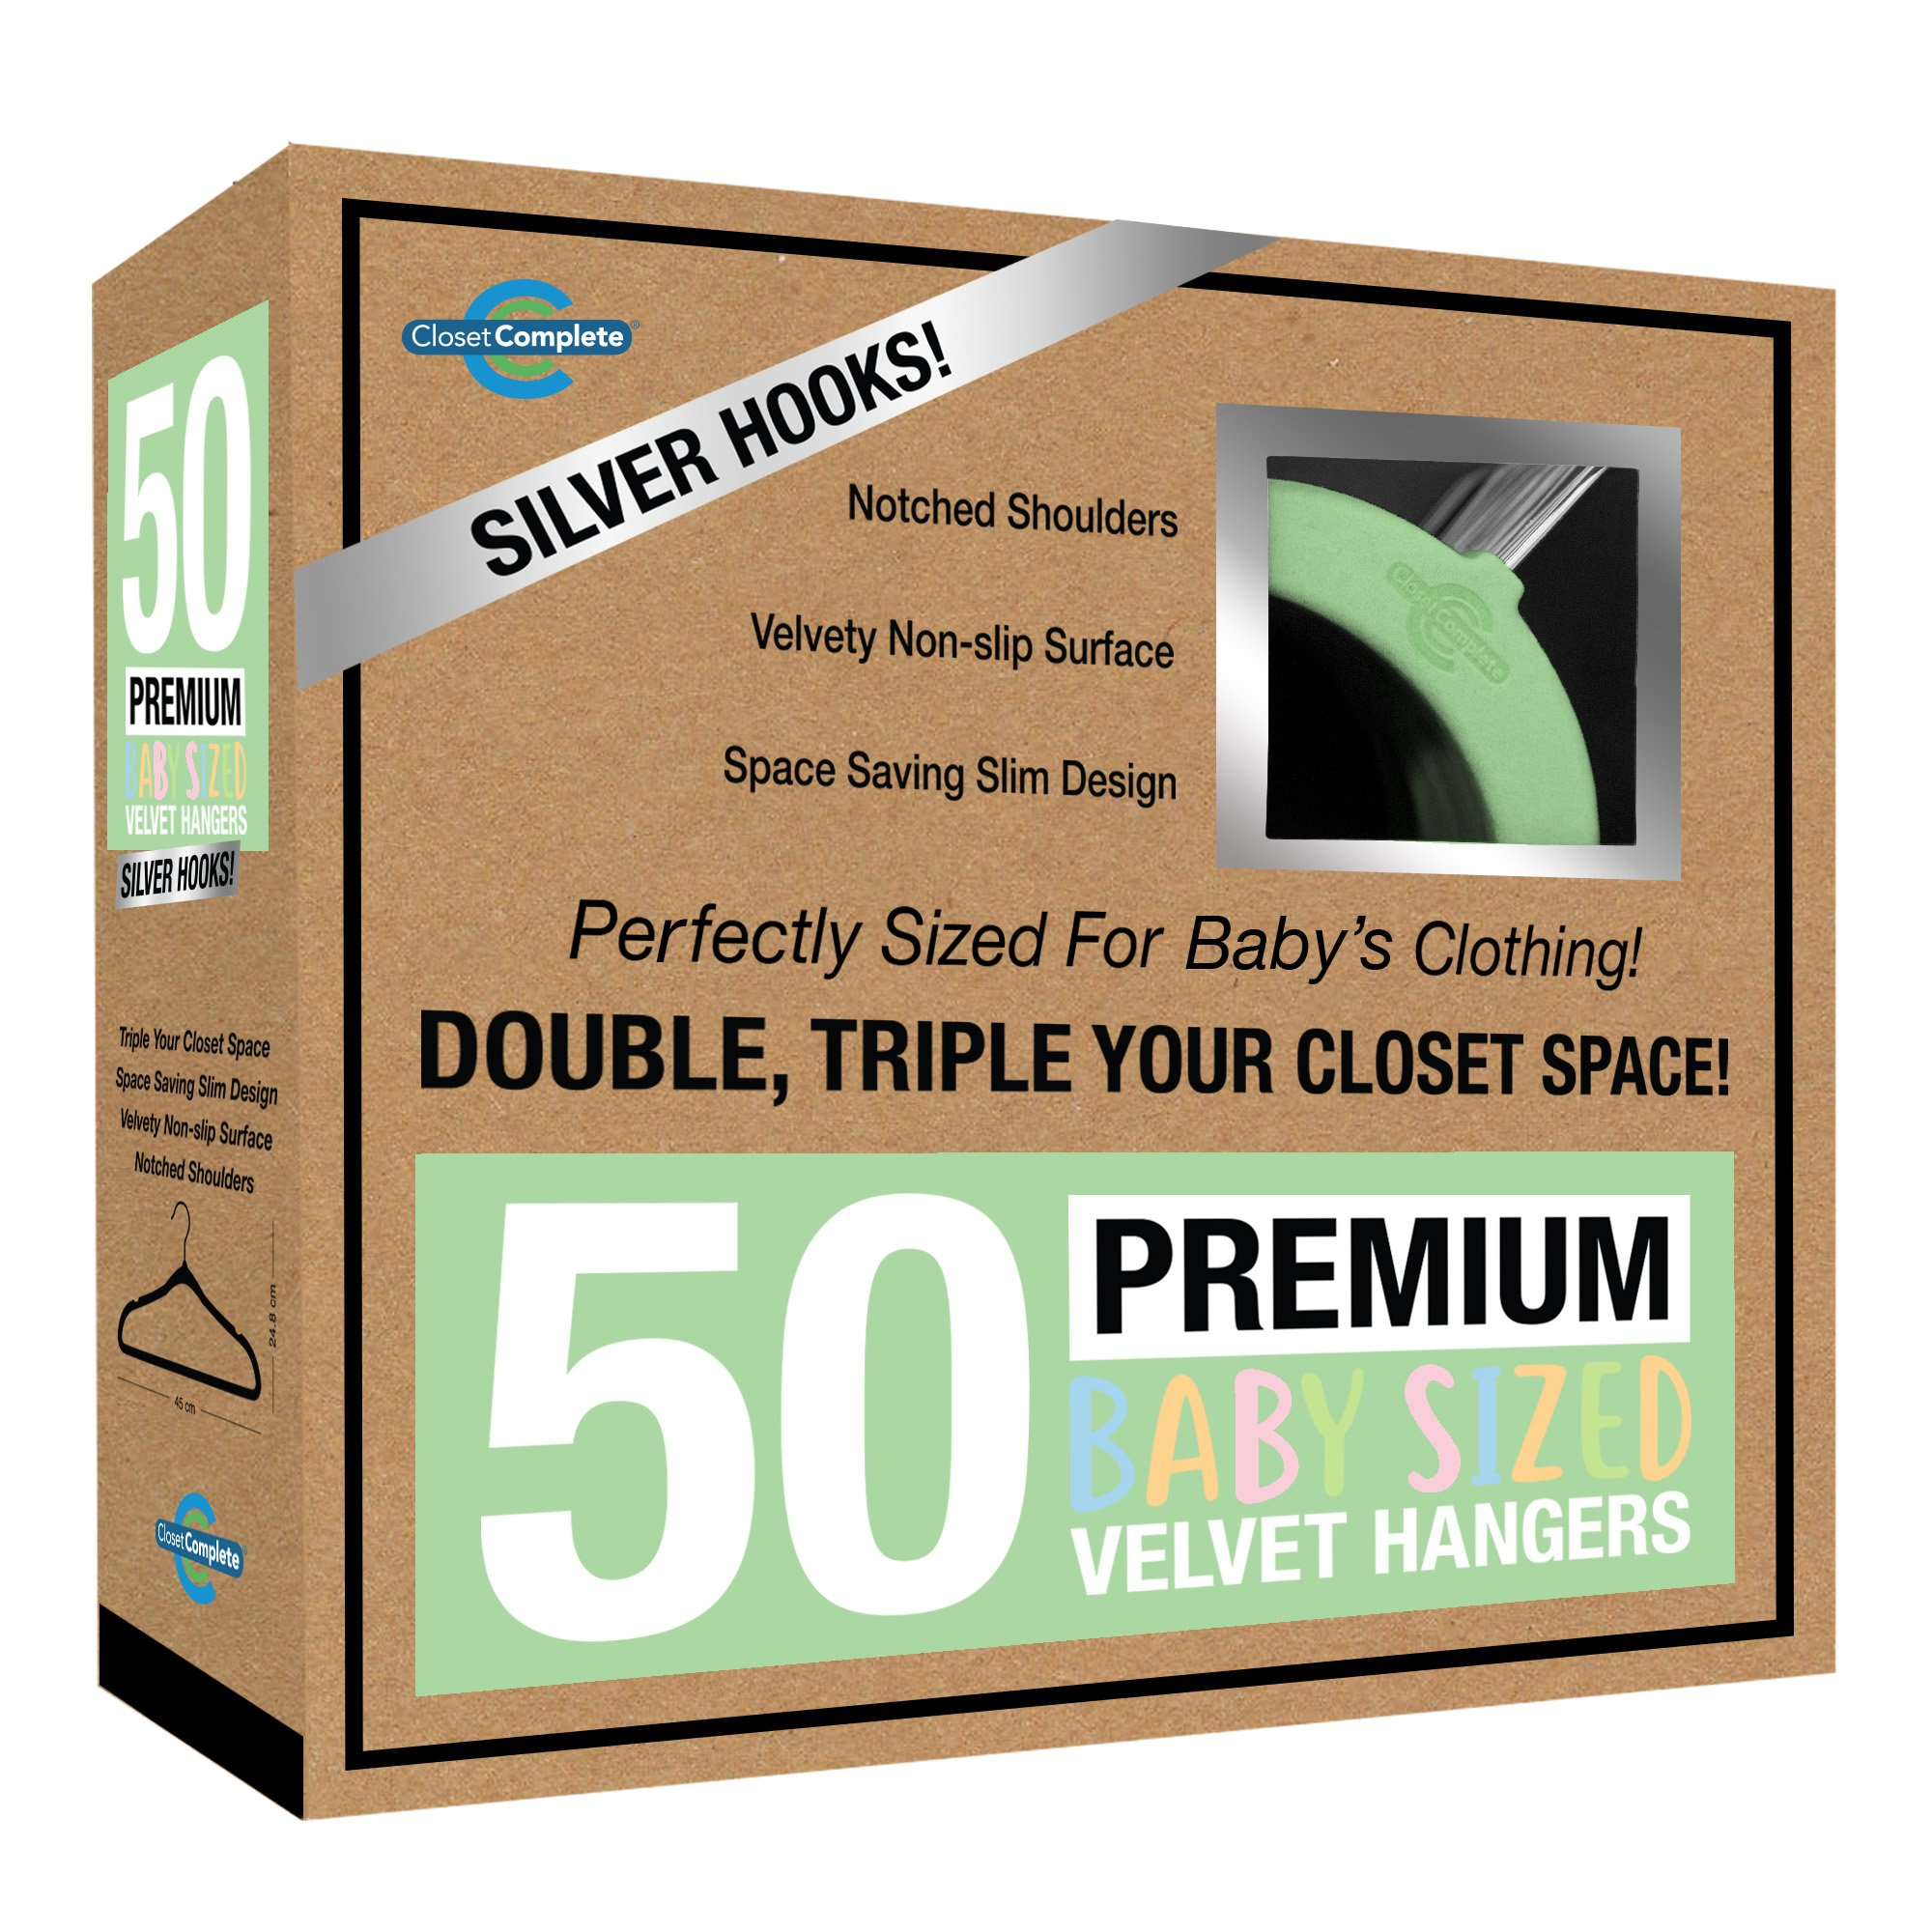 Closet Complete Baby Velvet Hangers, Premium Quality, True-Heavyweight, Virtually-UNBREAKABLE, Ultra-Thin, Space Saving No-Slip, Perfect Size for Babies 0-48 months 360° SPIN, Chrome Hooks, Green 50pc